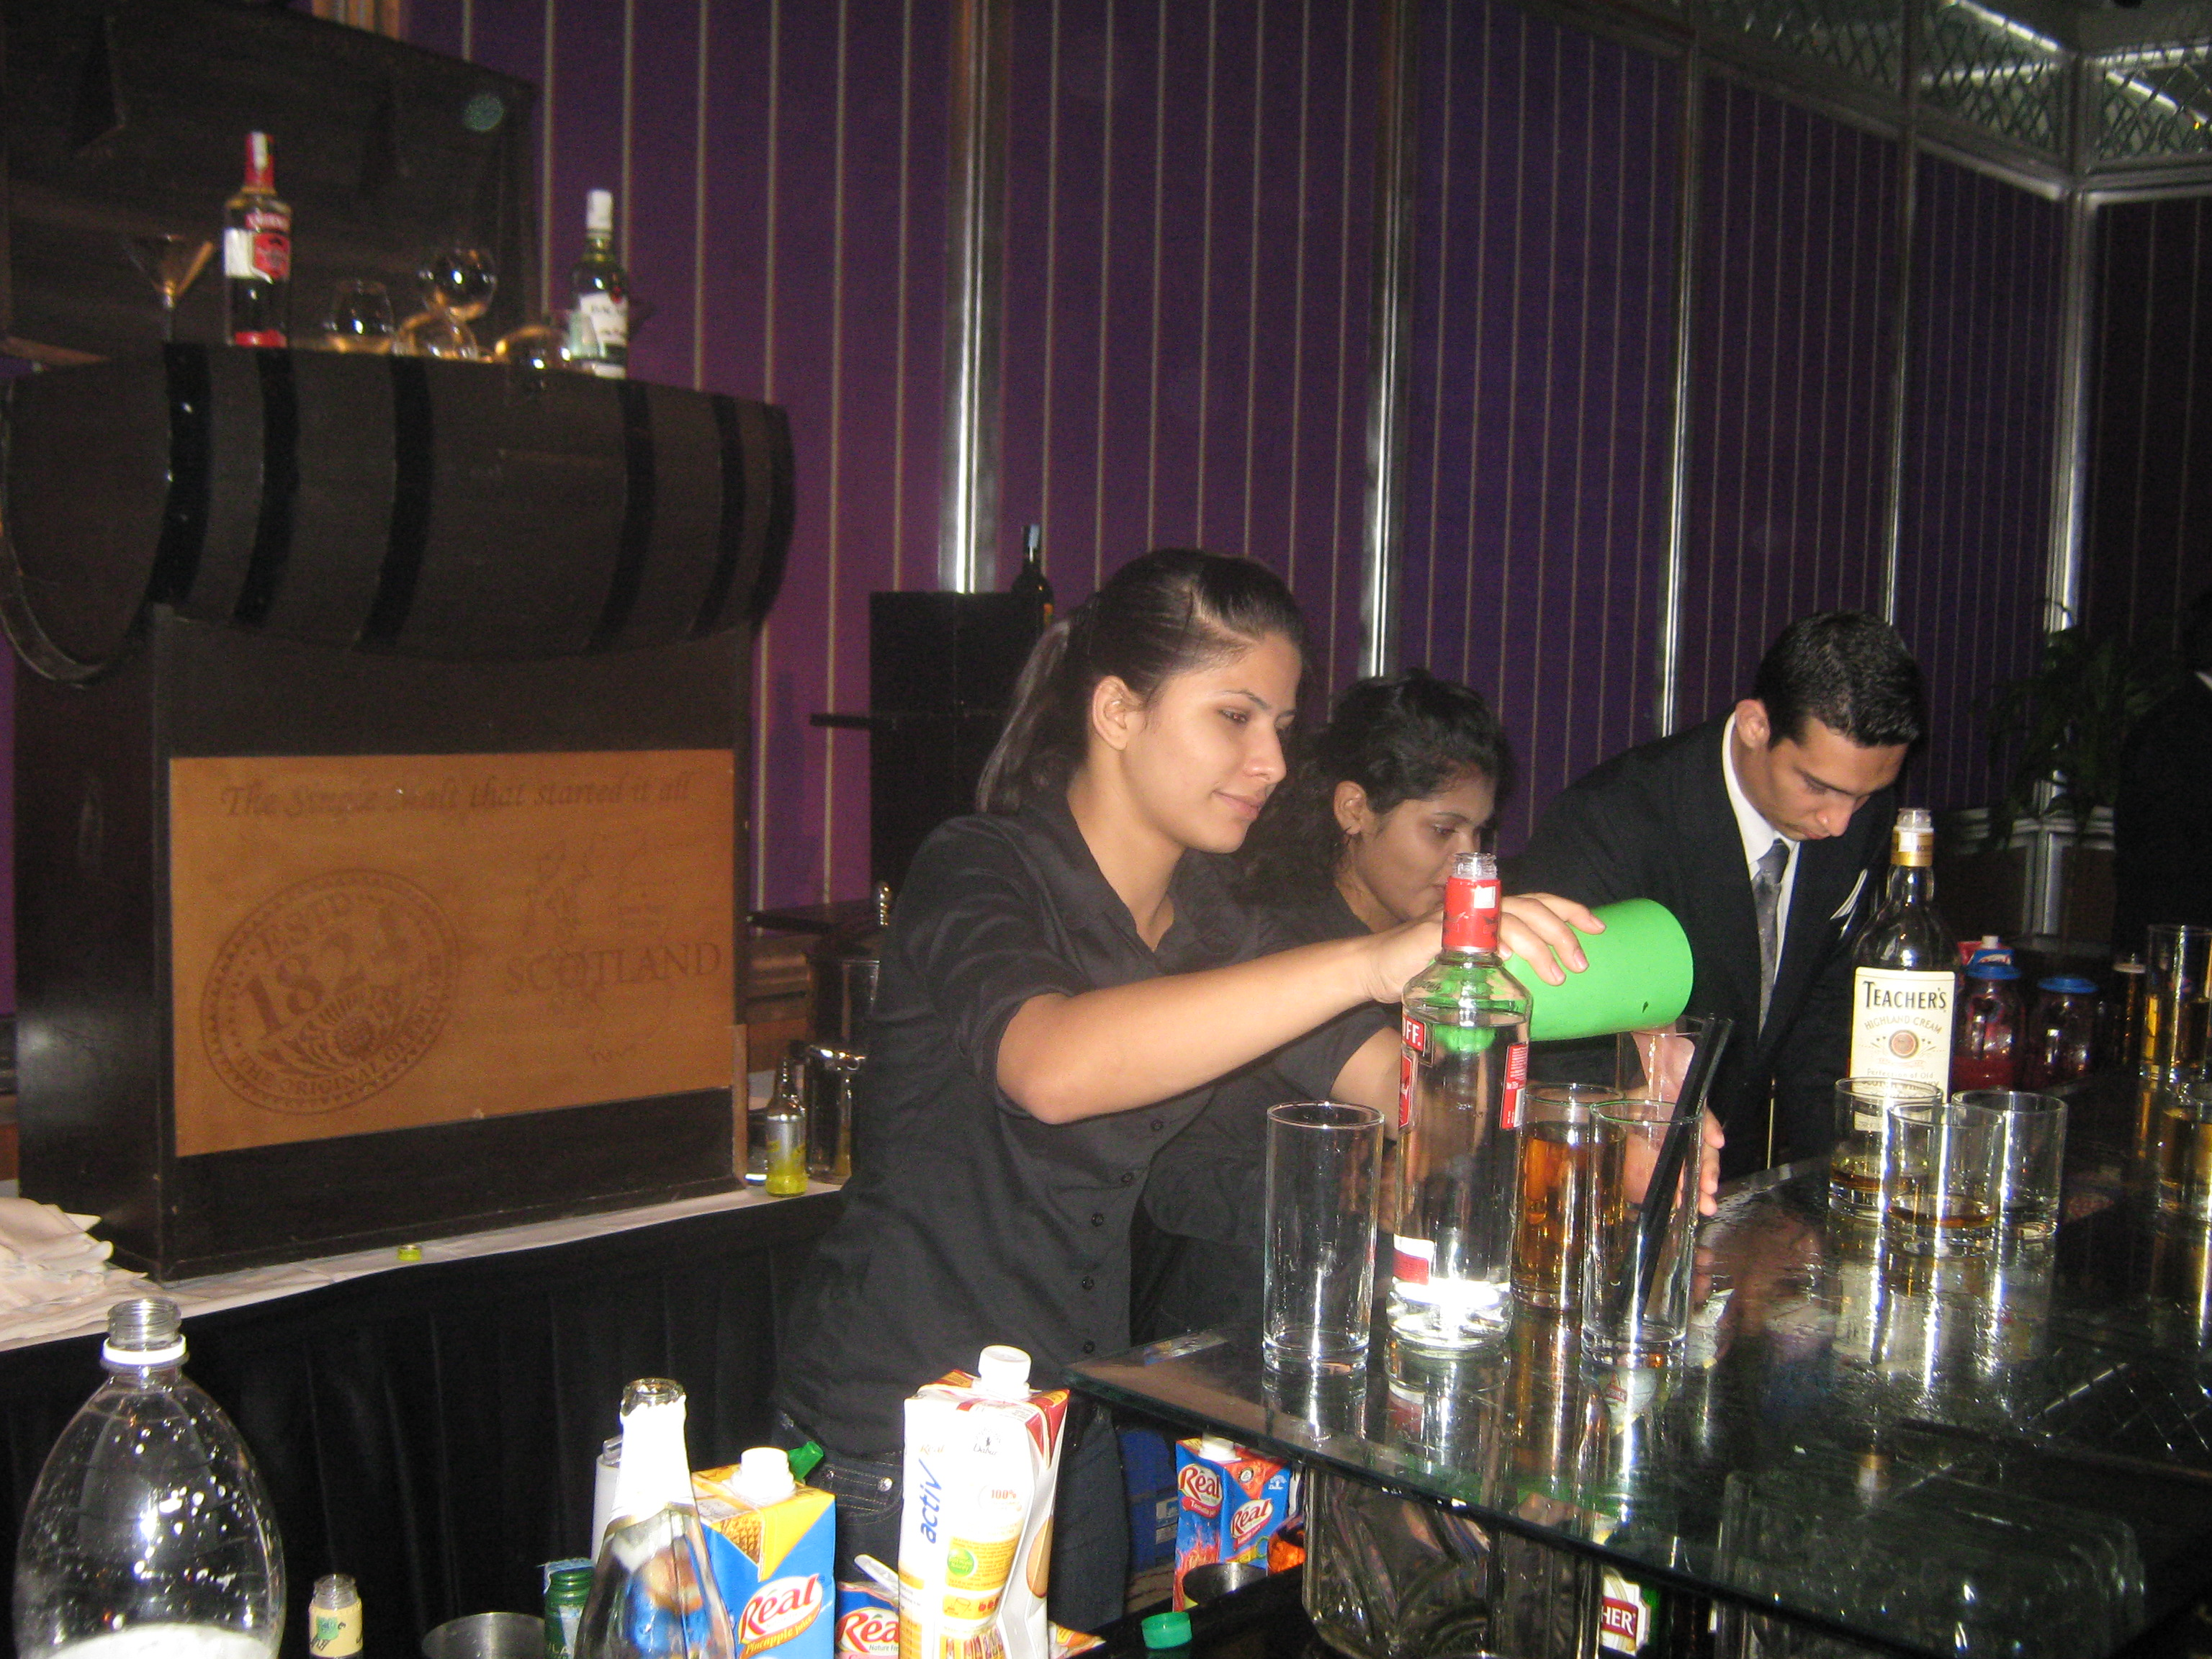 bar training cocktail training bar events hire bartender bartending bartender india delhi rajasthan delhi vineet mishra bartending india cocktailjockey cocktail jockey